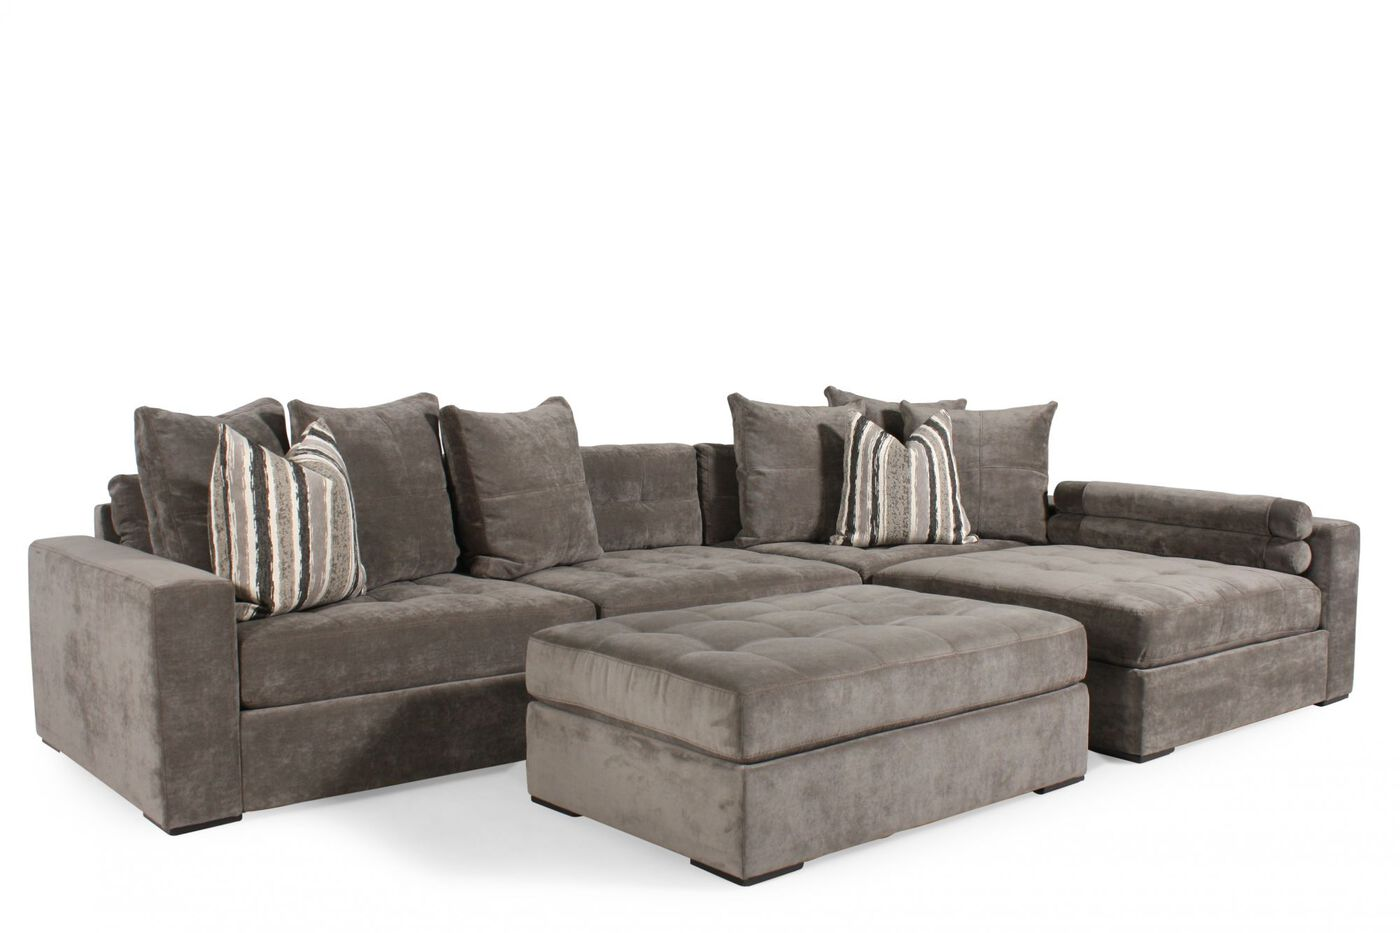 Jonathan louis noah gray sectional mathis brothers furniture for Mathis brothers living room furniture sectional sofas